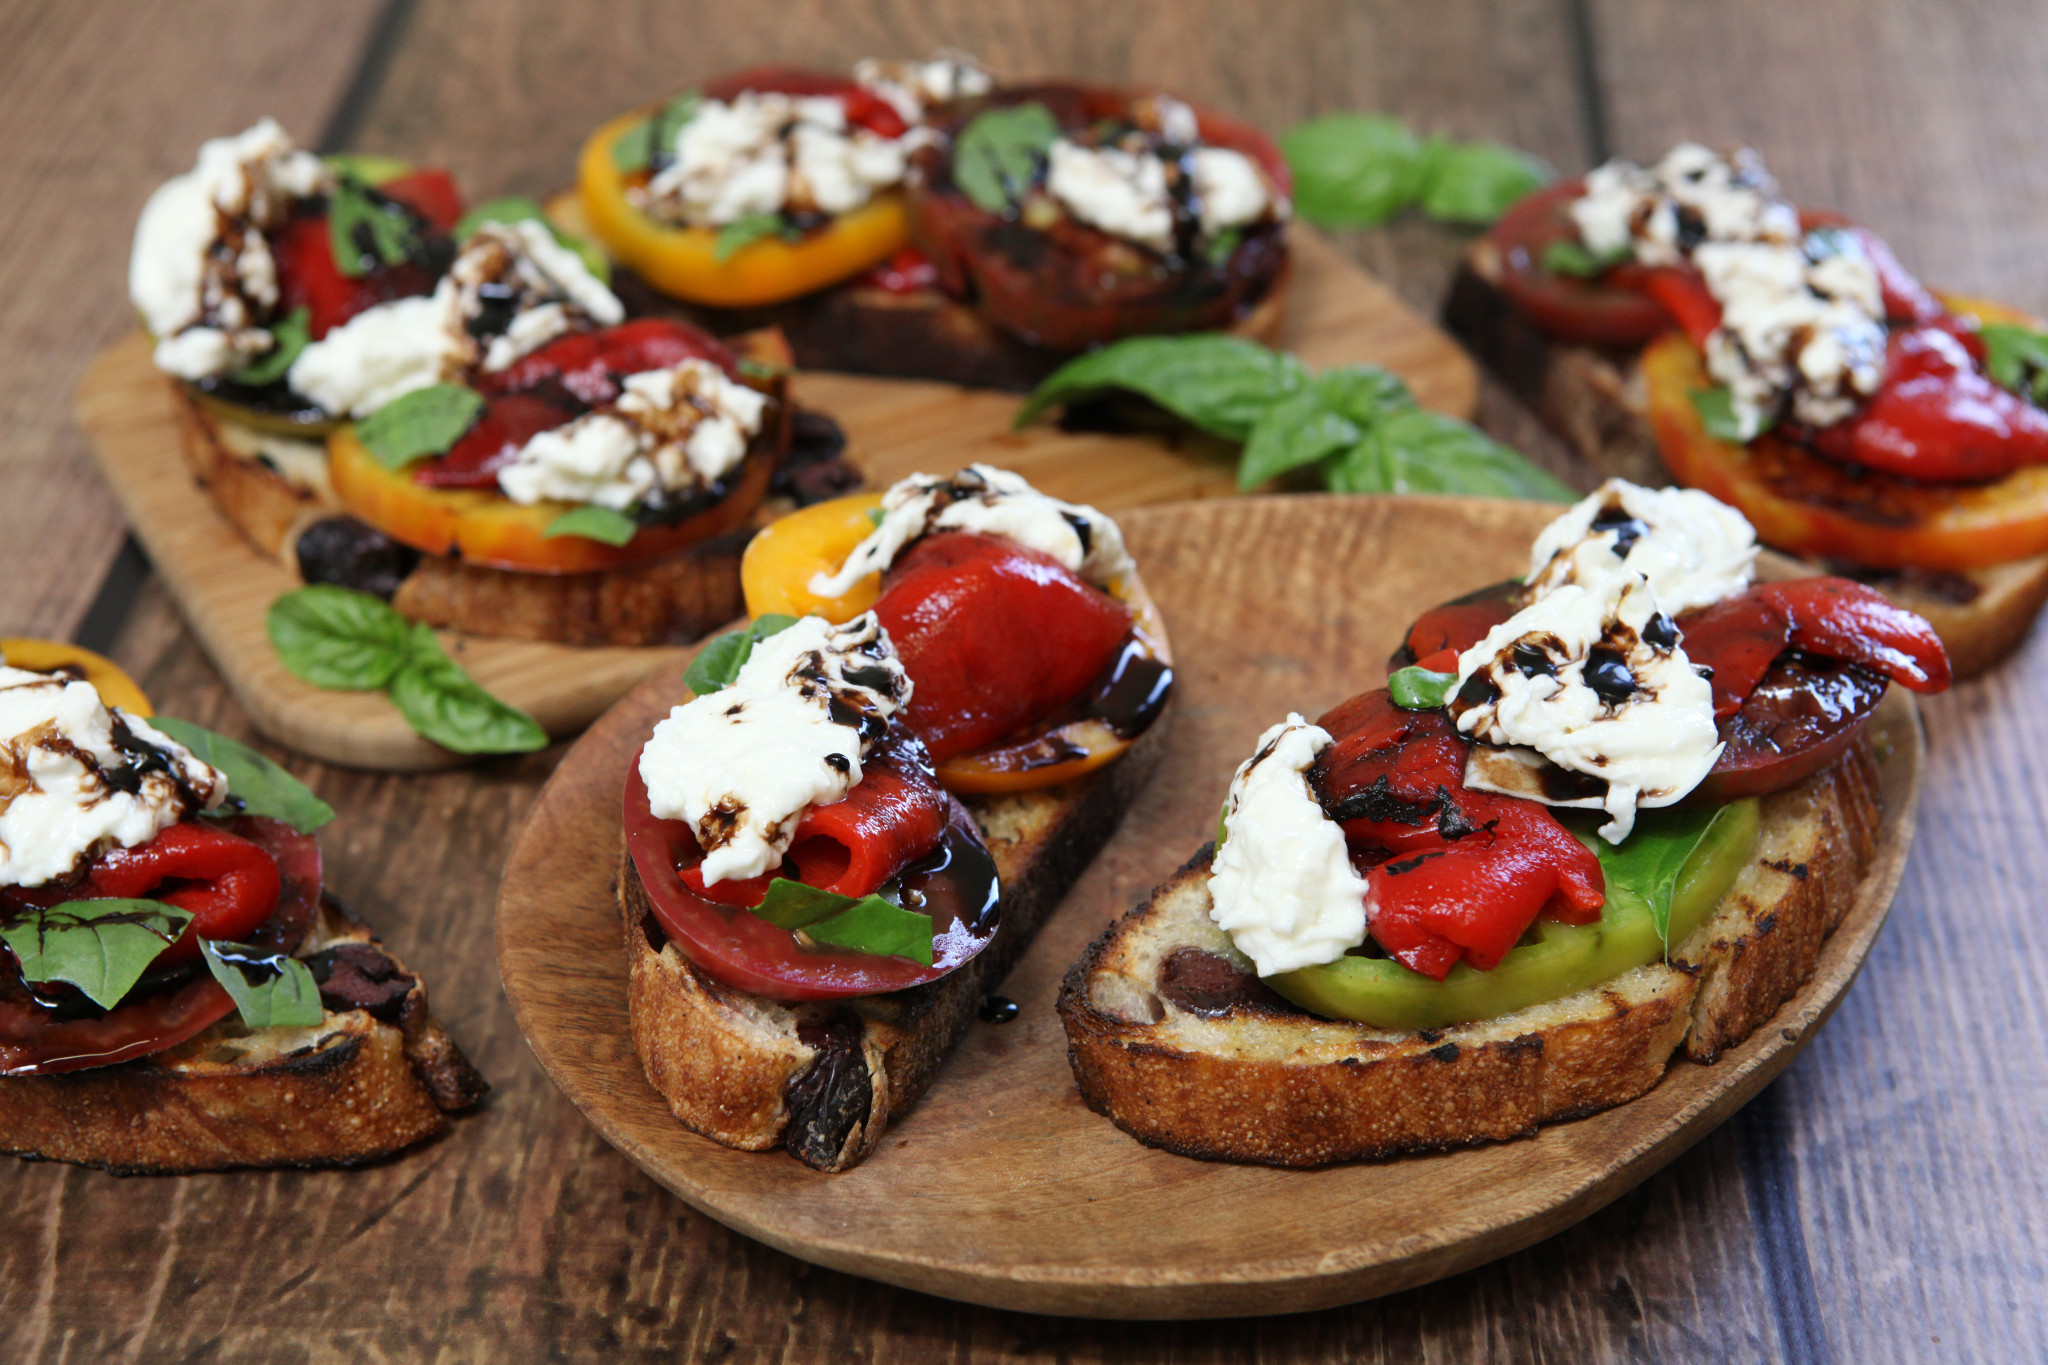 Bruschetta with Roasted Red Peppers & Cheese